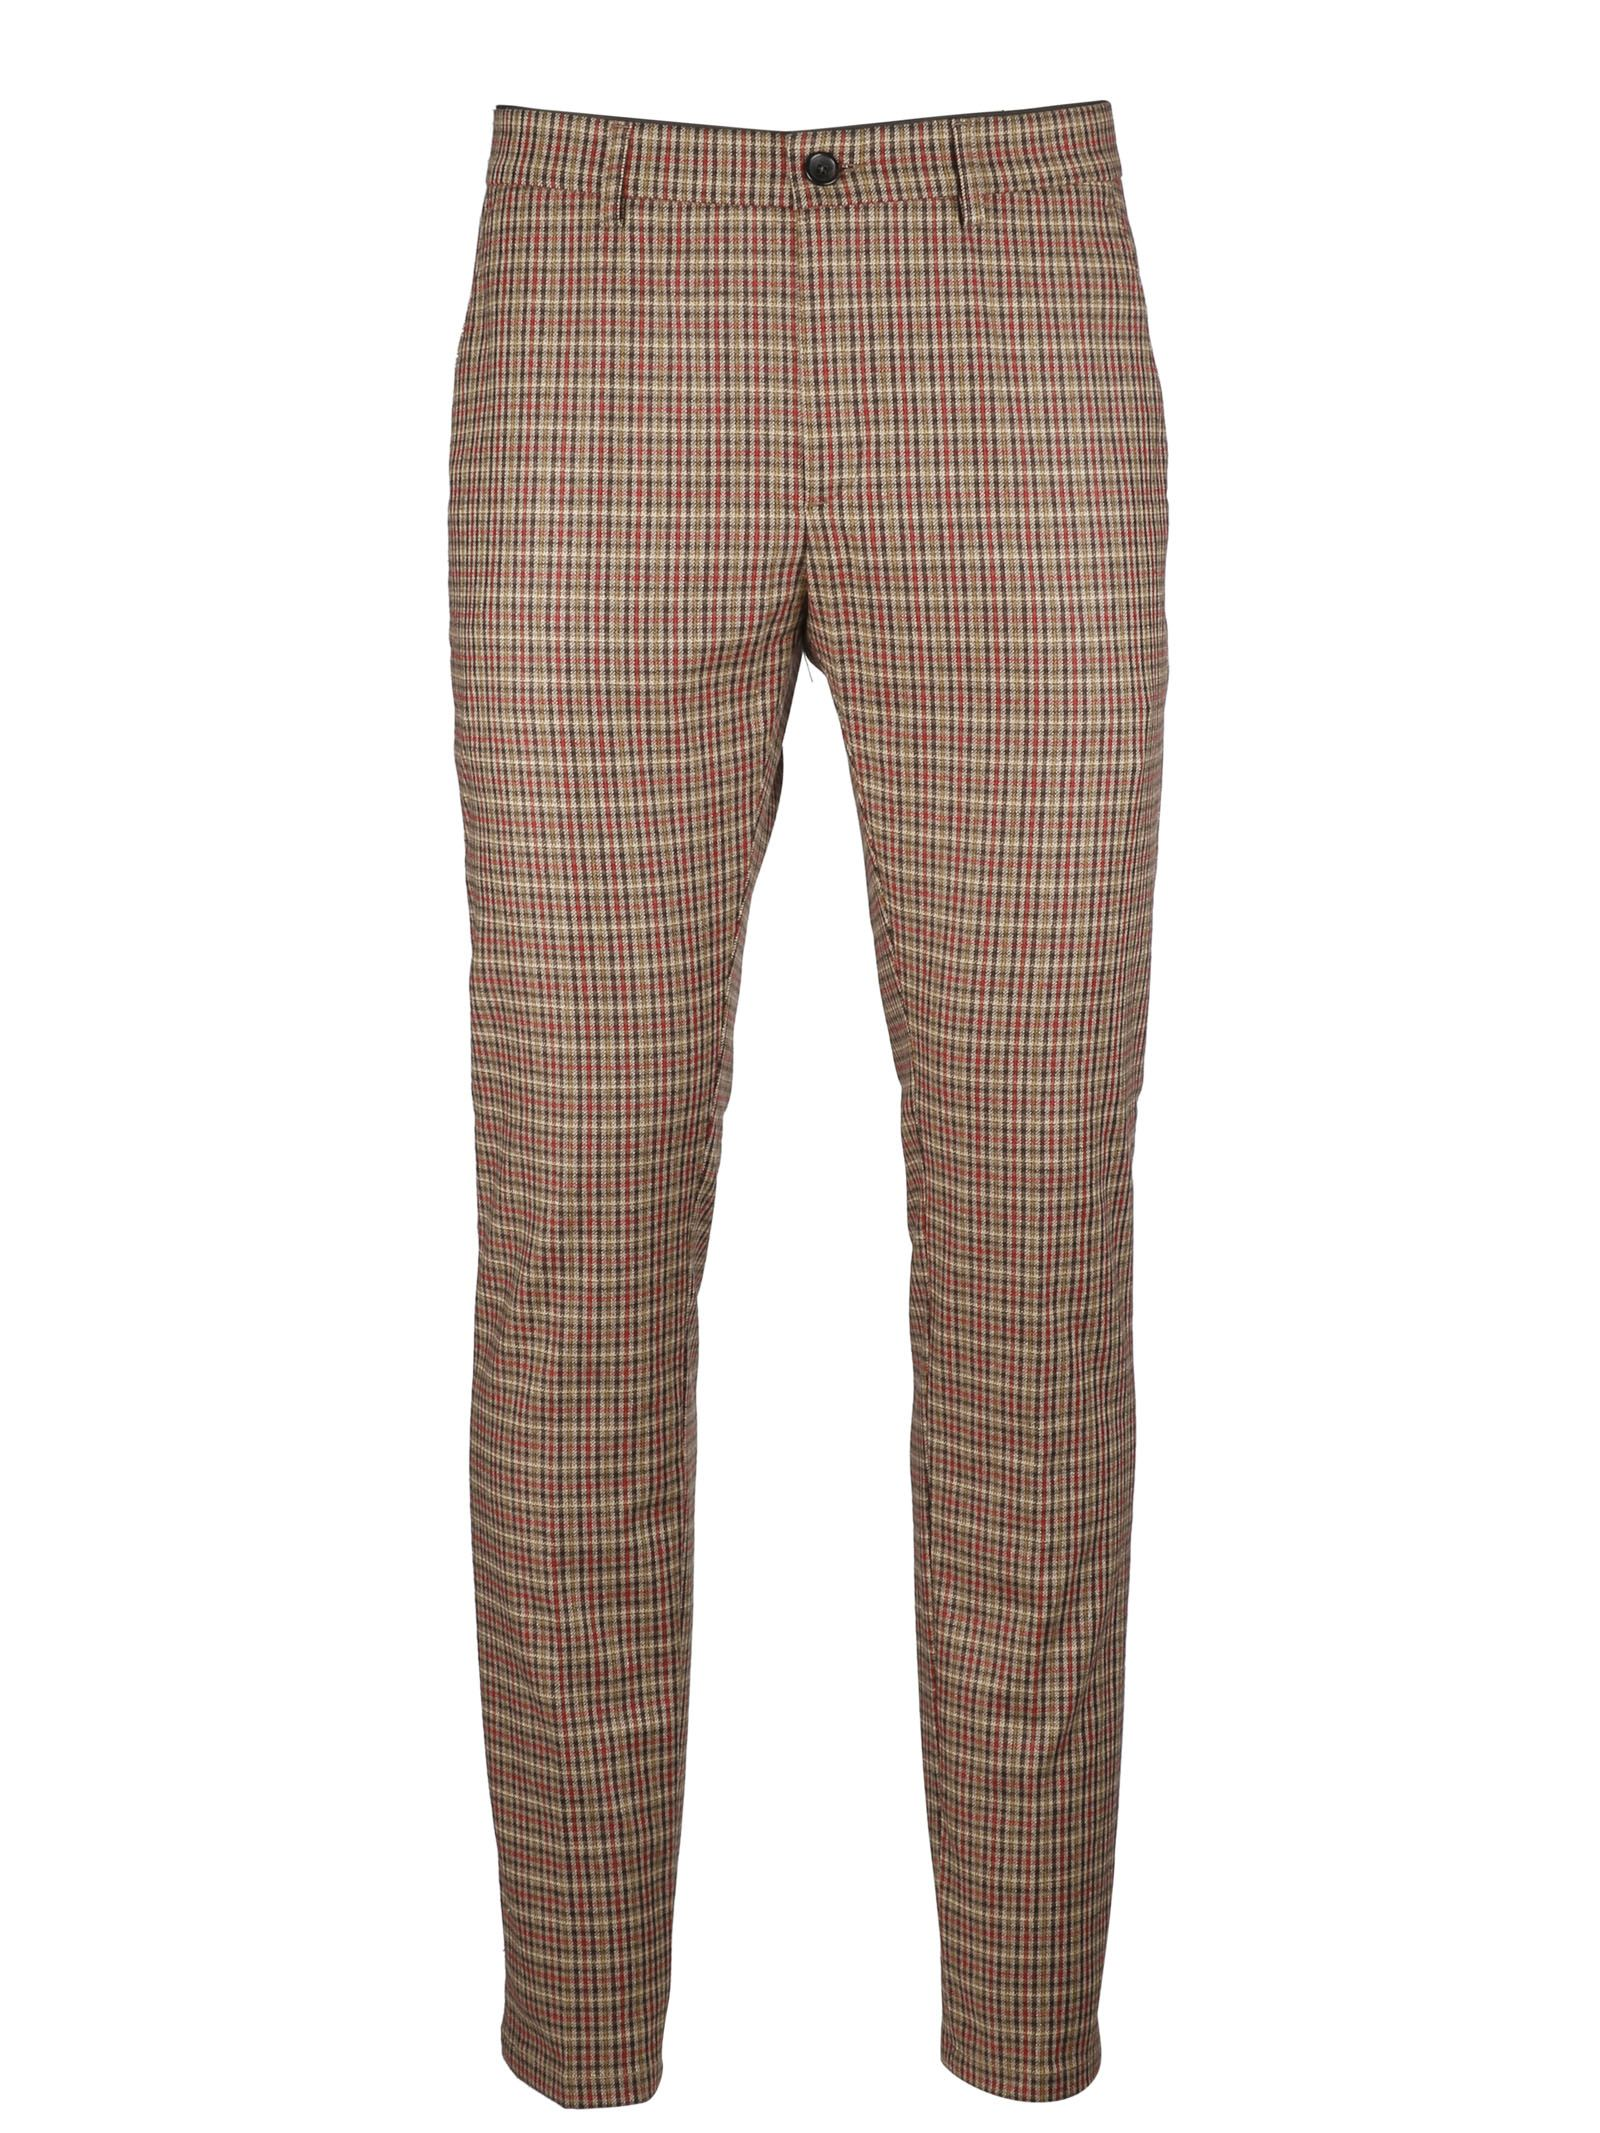 Department Five Checkered Trousers